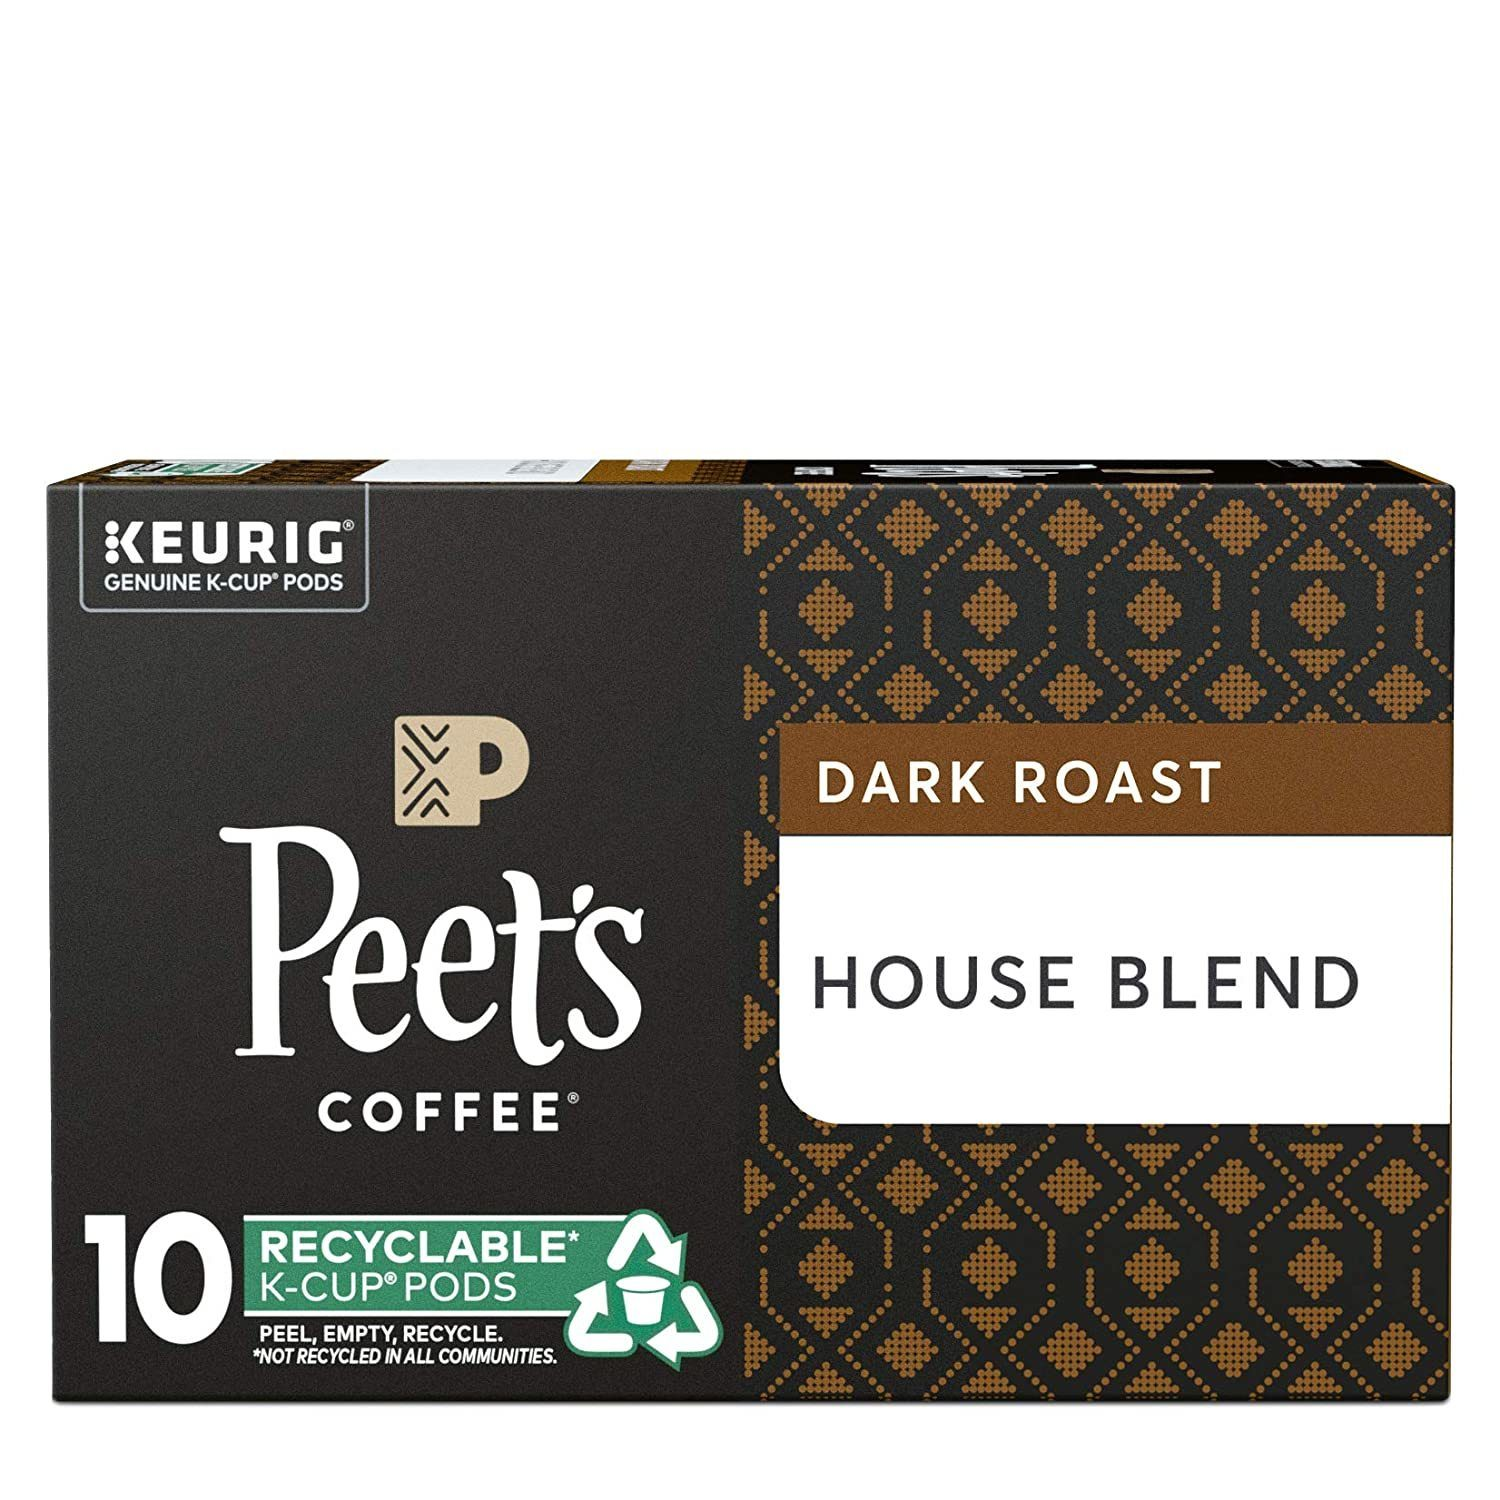 Peet's Coffee House Blend Dark Roast Coffee K-Cup